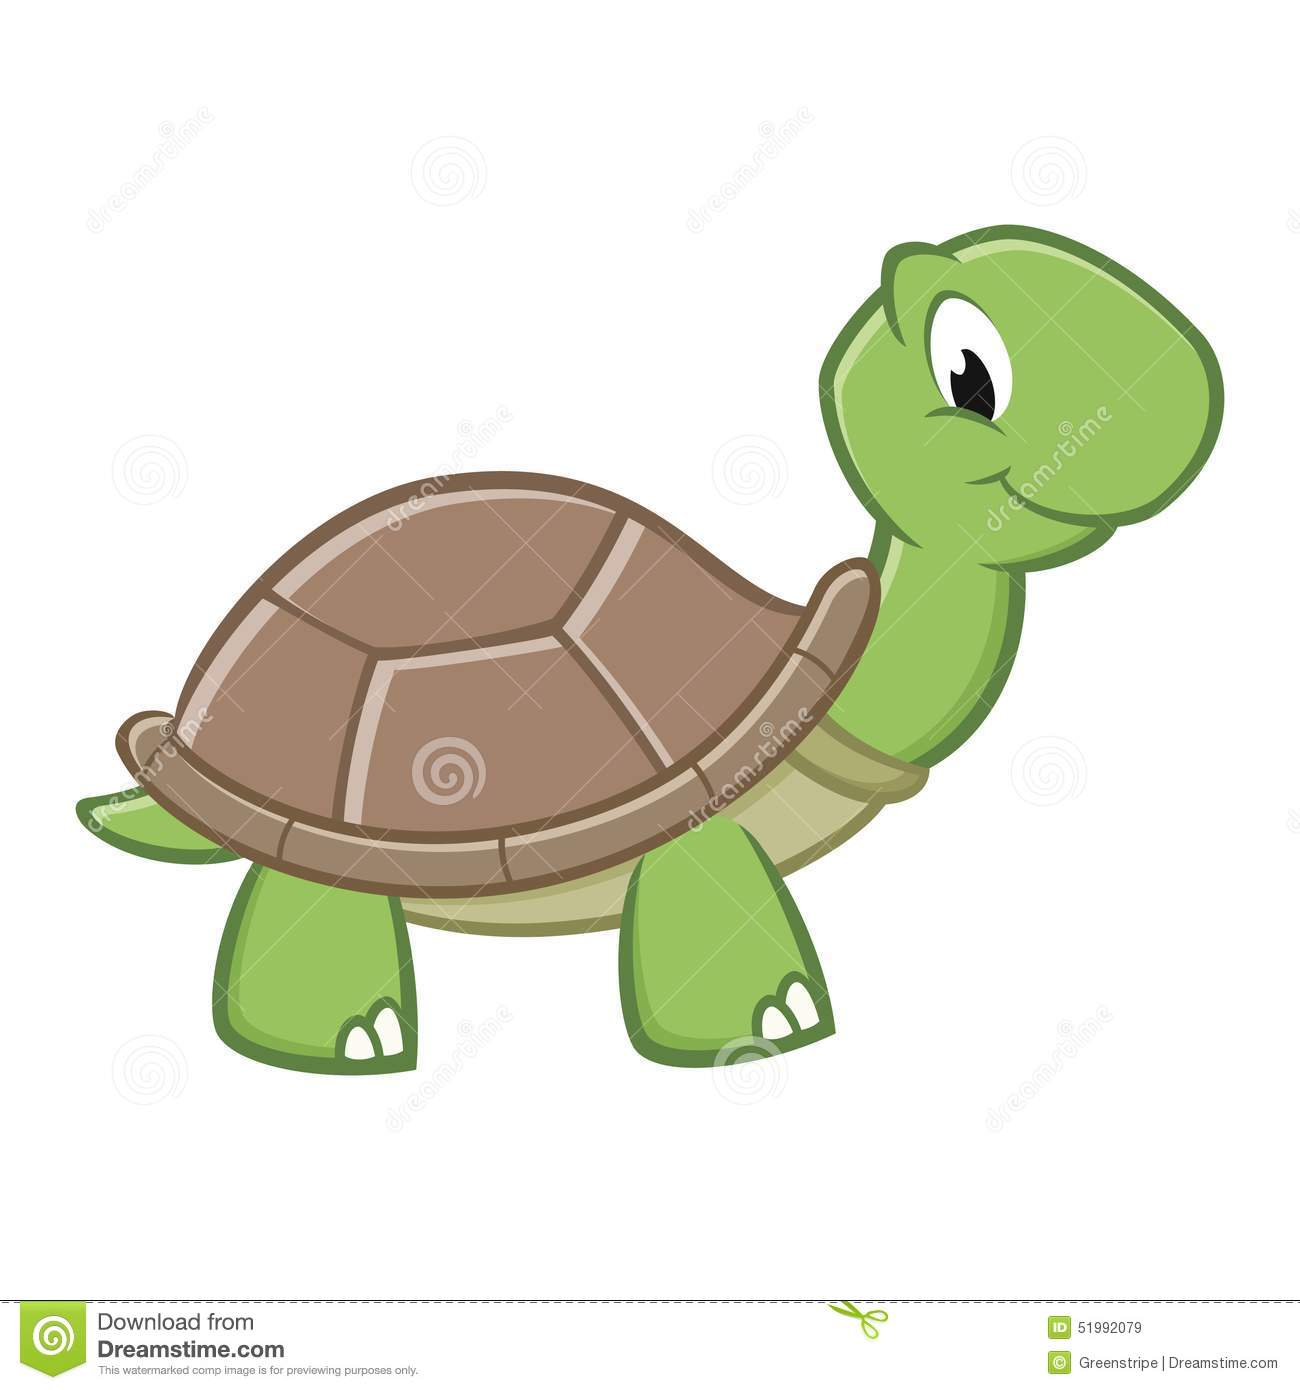 how to draw a cute cartoon turtle